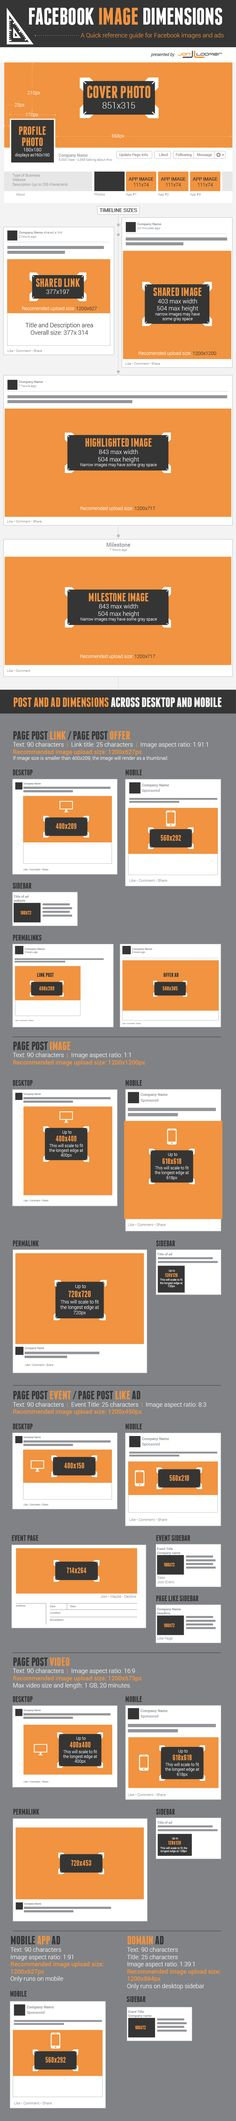 facebook-image-dimensions-timeline-newsfeed-posts-ads